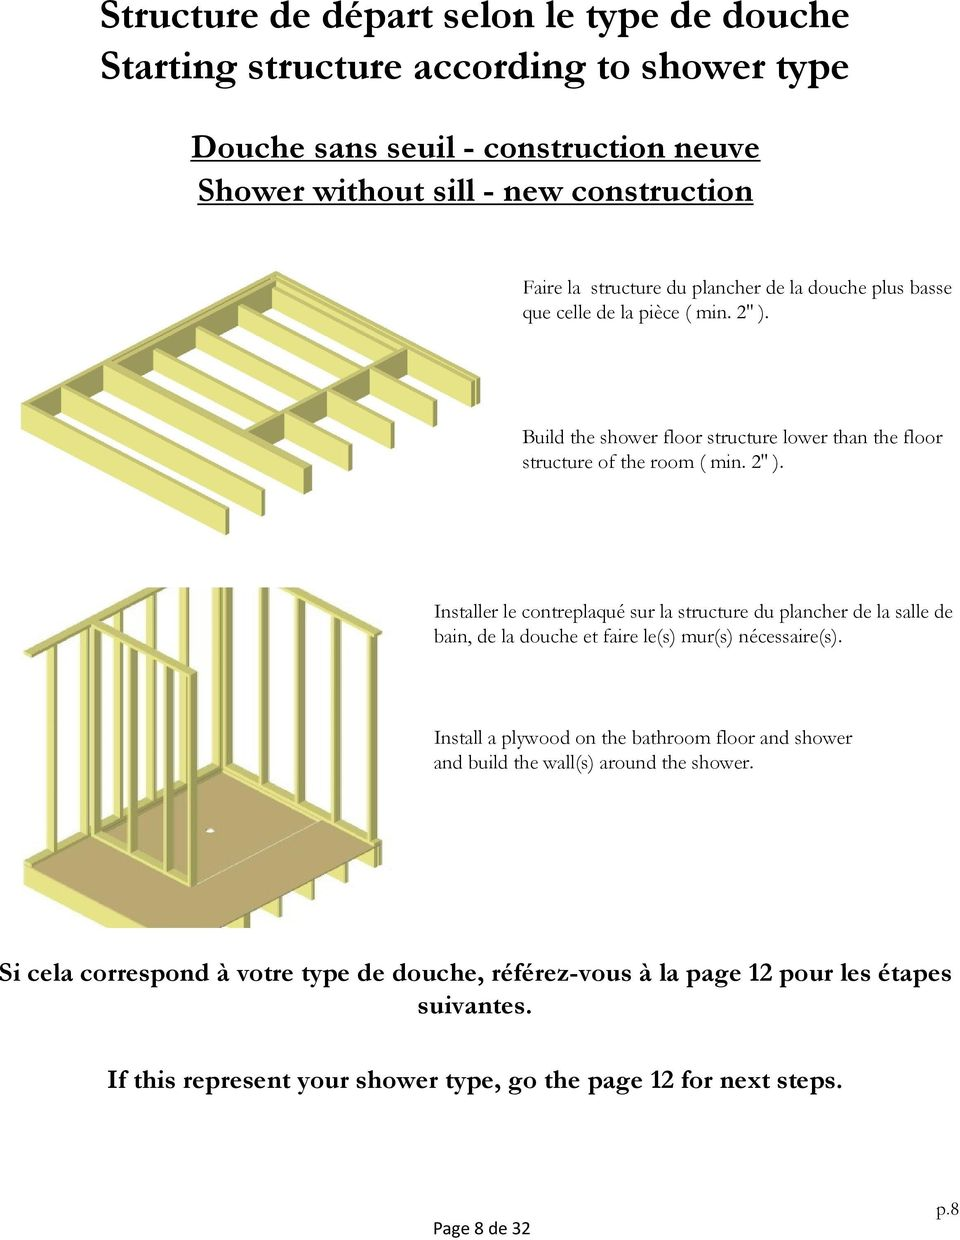 Build the shower floor structure lower than the floor structure of the room ( min. 2'' ).